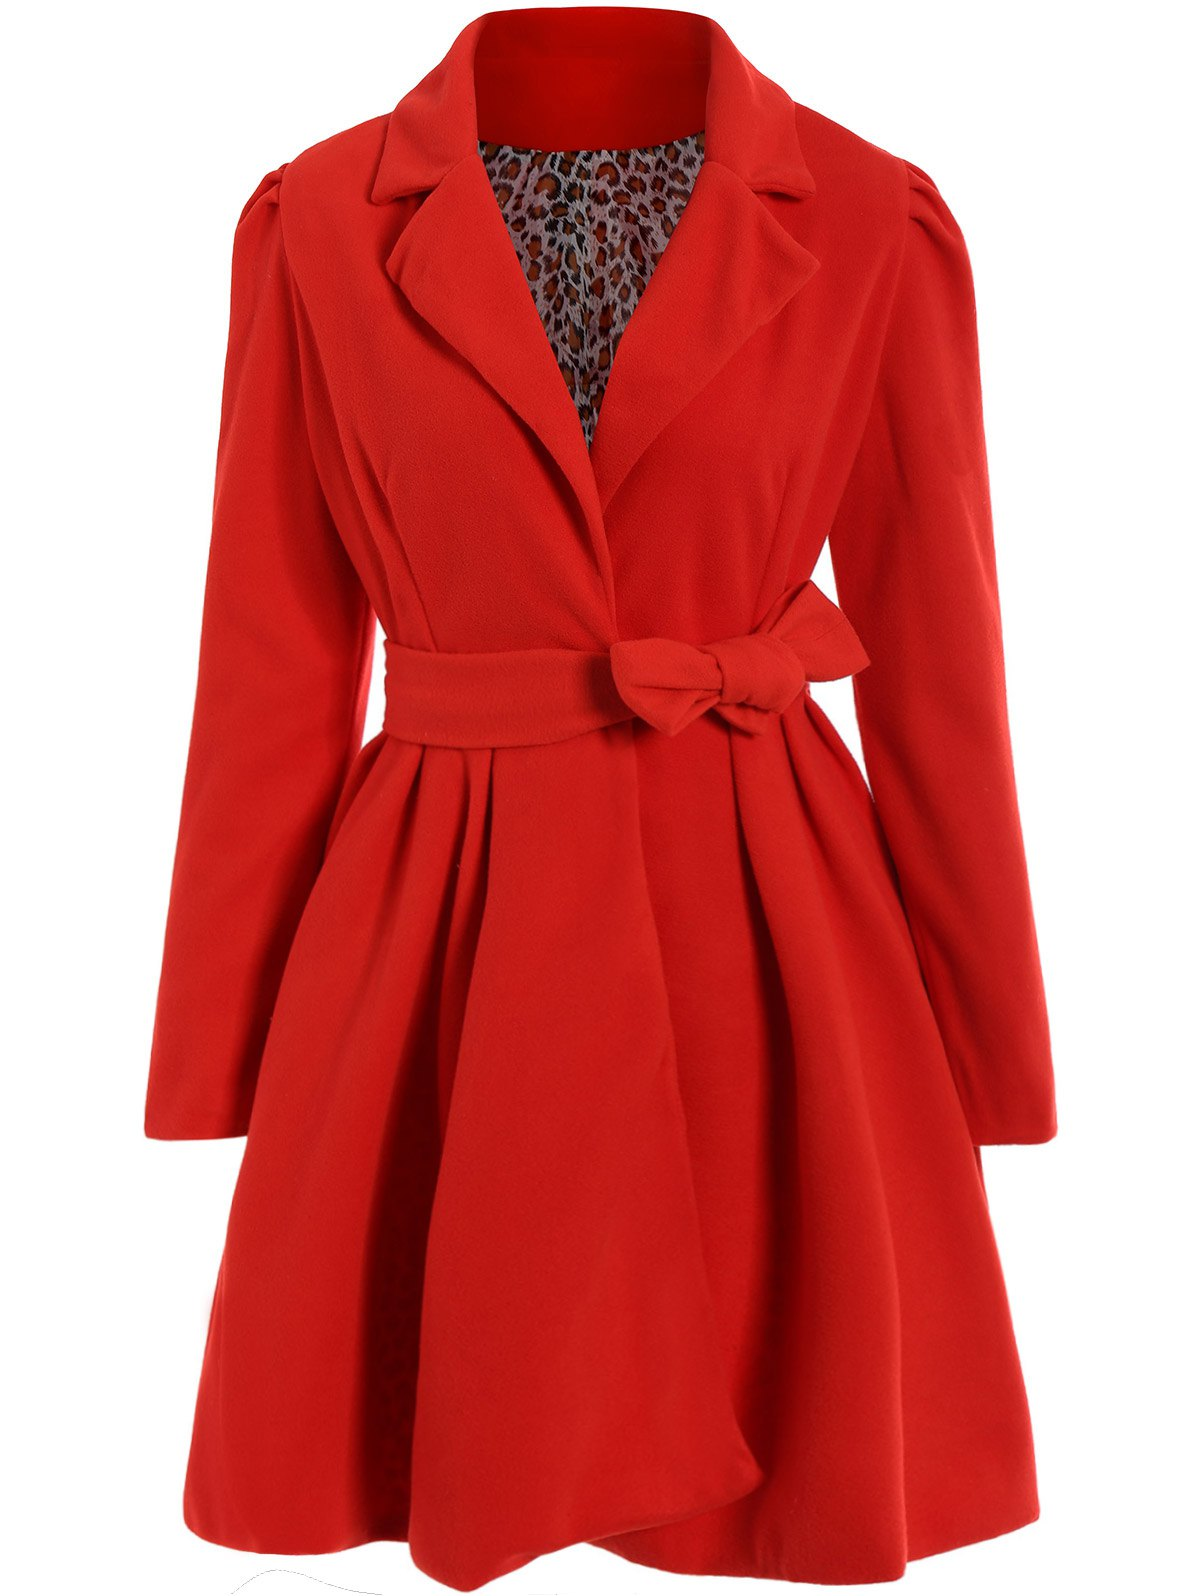 Noble Turn-Down Collar Long Sleeve Pure Color Self Tie Belt Womens Coat DressWOMEN<br><br>Size: XL; Color: RED; Clothes Type: Wool &amp; Blends; Material: Polyester; Type: Skirt; Shirt Length: Long; Sleeve Length: Full; Collar: Turn-down Collar; Pattern Type: Solid; Embellishment: Sashes; Style: Fashion; Season: Spring,Fall,Winter; With Belt: Yes; Weight: 0.850kg; Package Contents: 1 x Coat  1 x Belt;